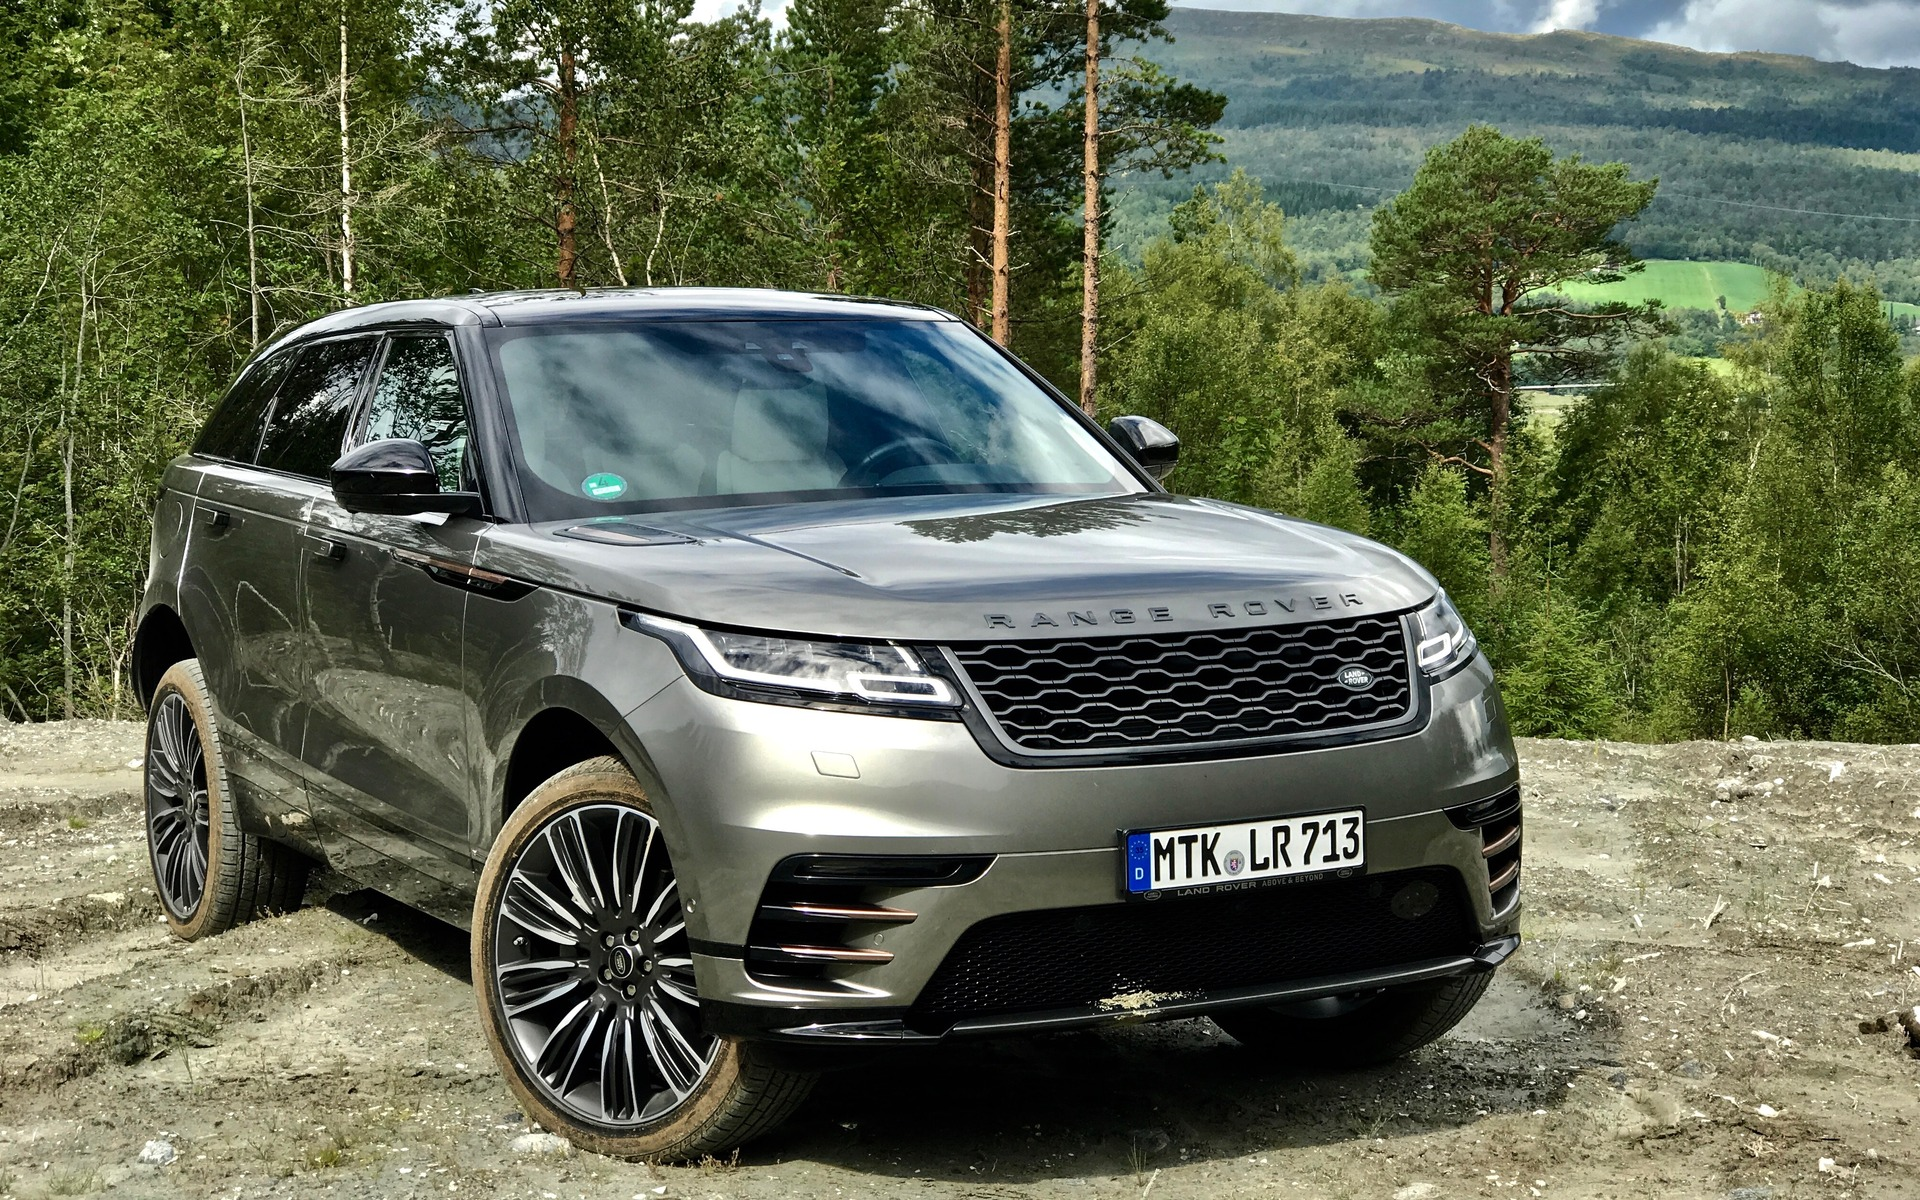 range rover velar 2018 v hicule hors route galant guide auto. Black Bedroom Furniture Sets. Home Design Ideas